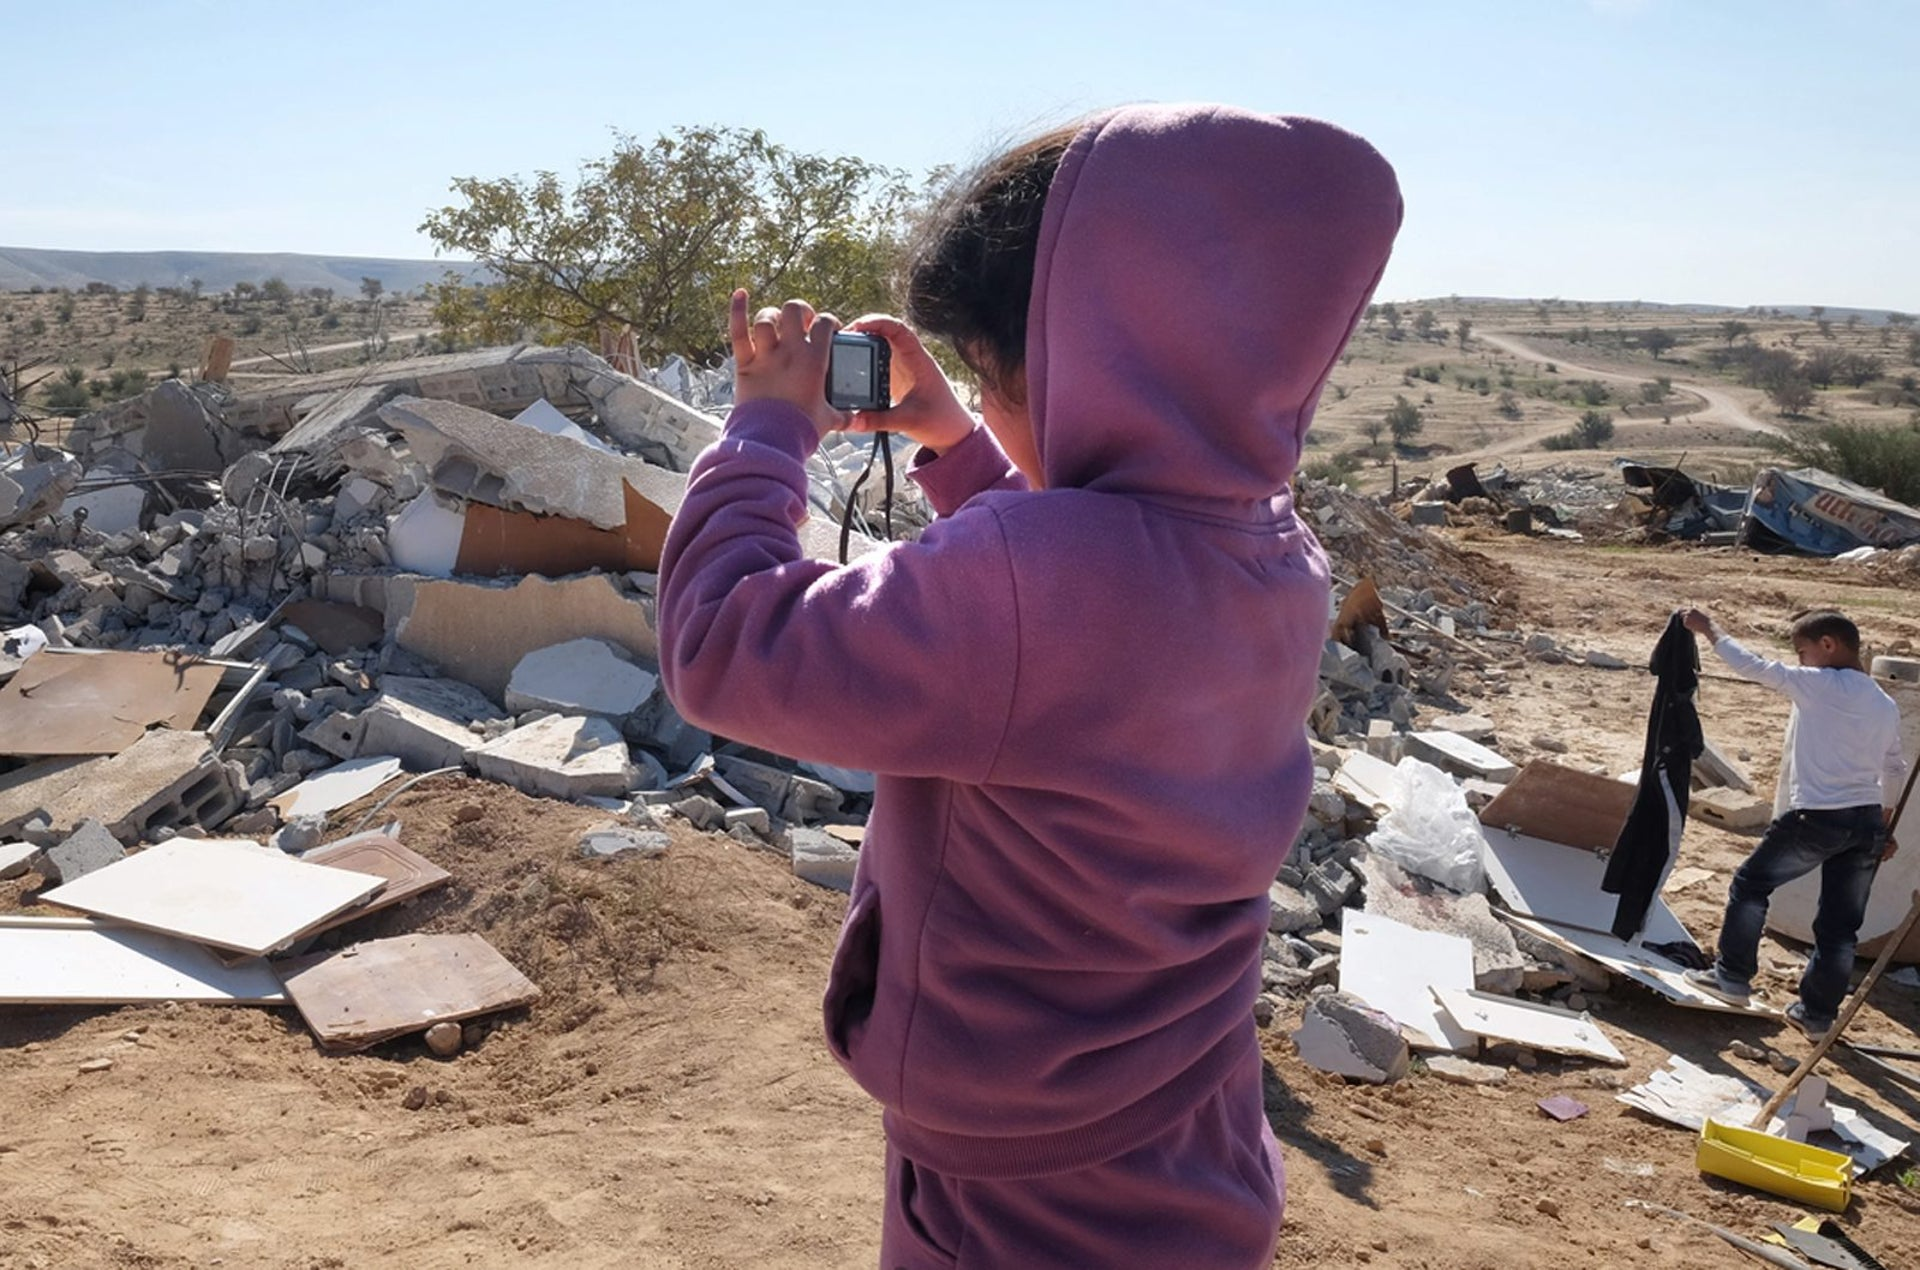 Houses demolished in the Bedouin village of Umm al-Hiran in southern Israel, January 25, 2017.